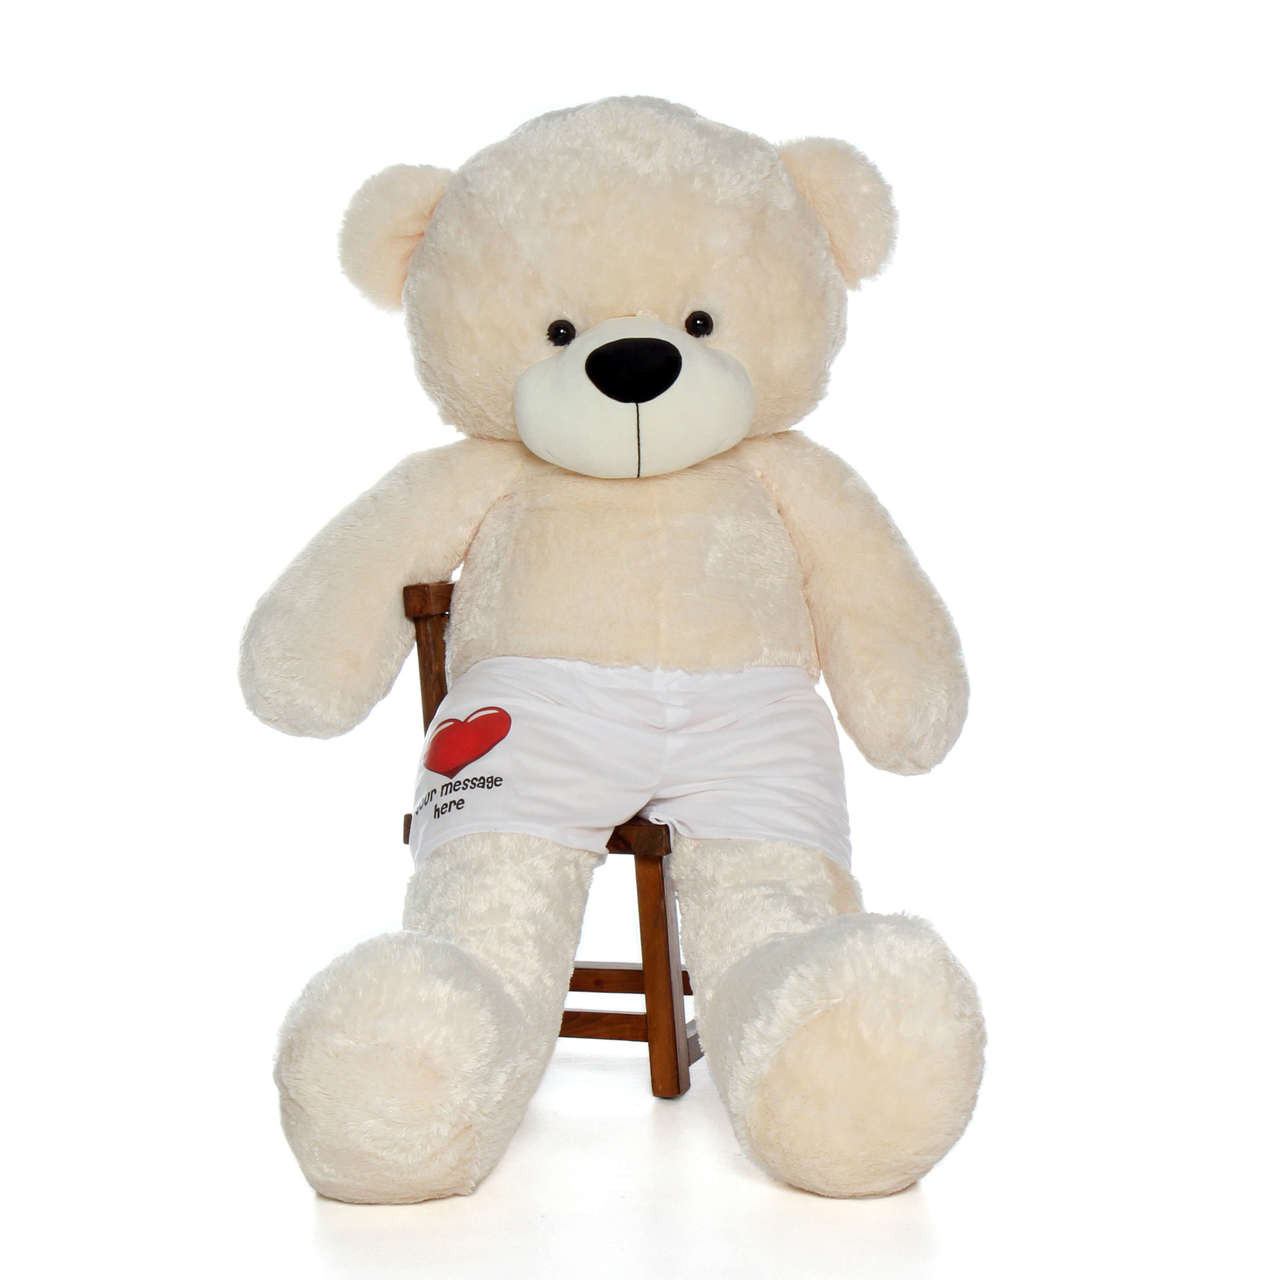 Life Size 6 Foot Teddy Bear in Cream with Personalized Boxers